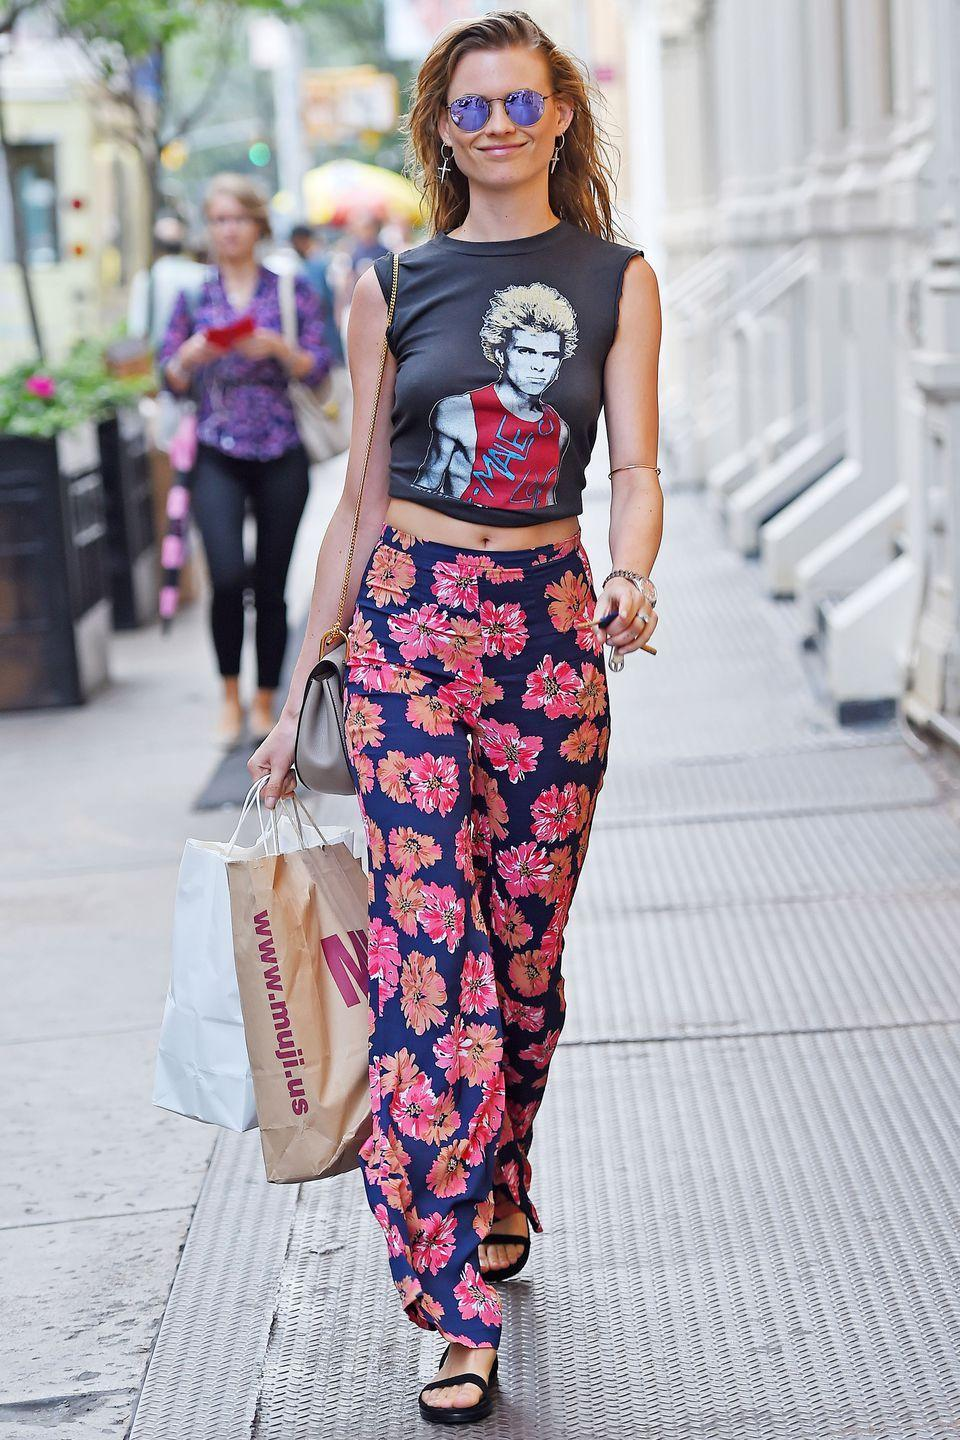 <p>Printed trousers can really pack a punch, as shown by Behati Prinsloo – and they are great for that in-between weather. Pair them with a simple T-shirt and sandals when it's warm, then slip on Converse trainers and a denim jacket when the evening breeze hits.</p>